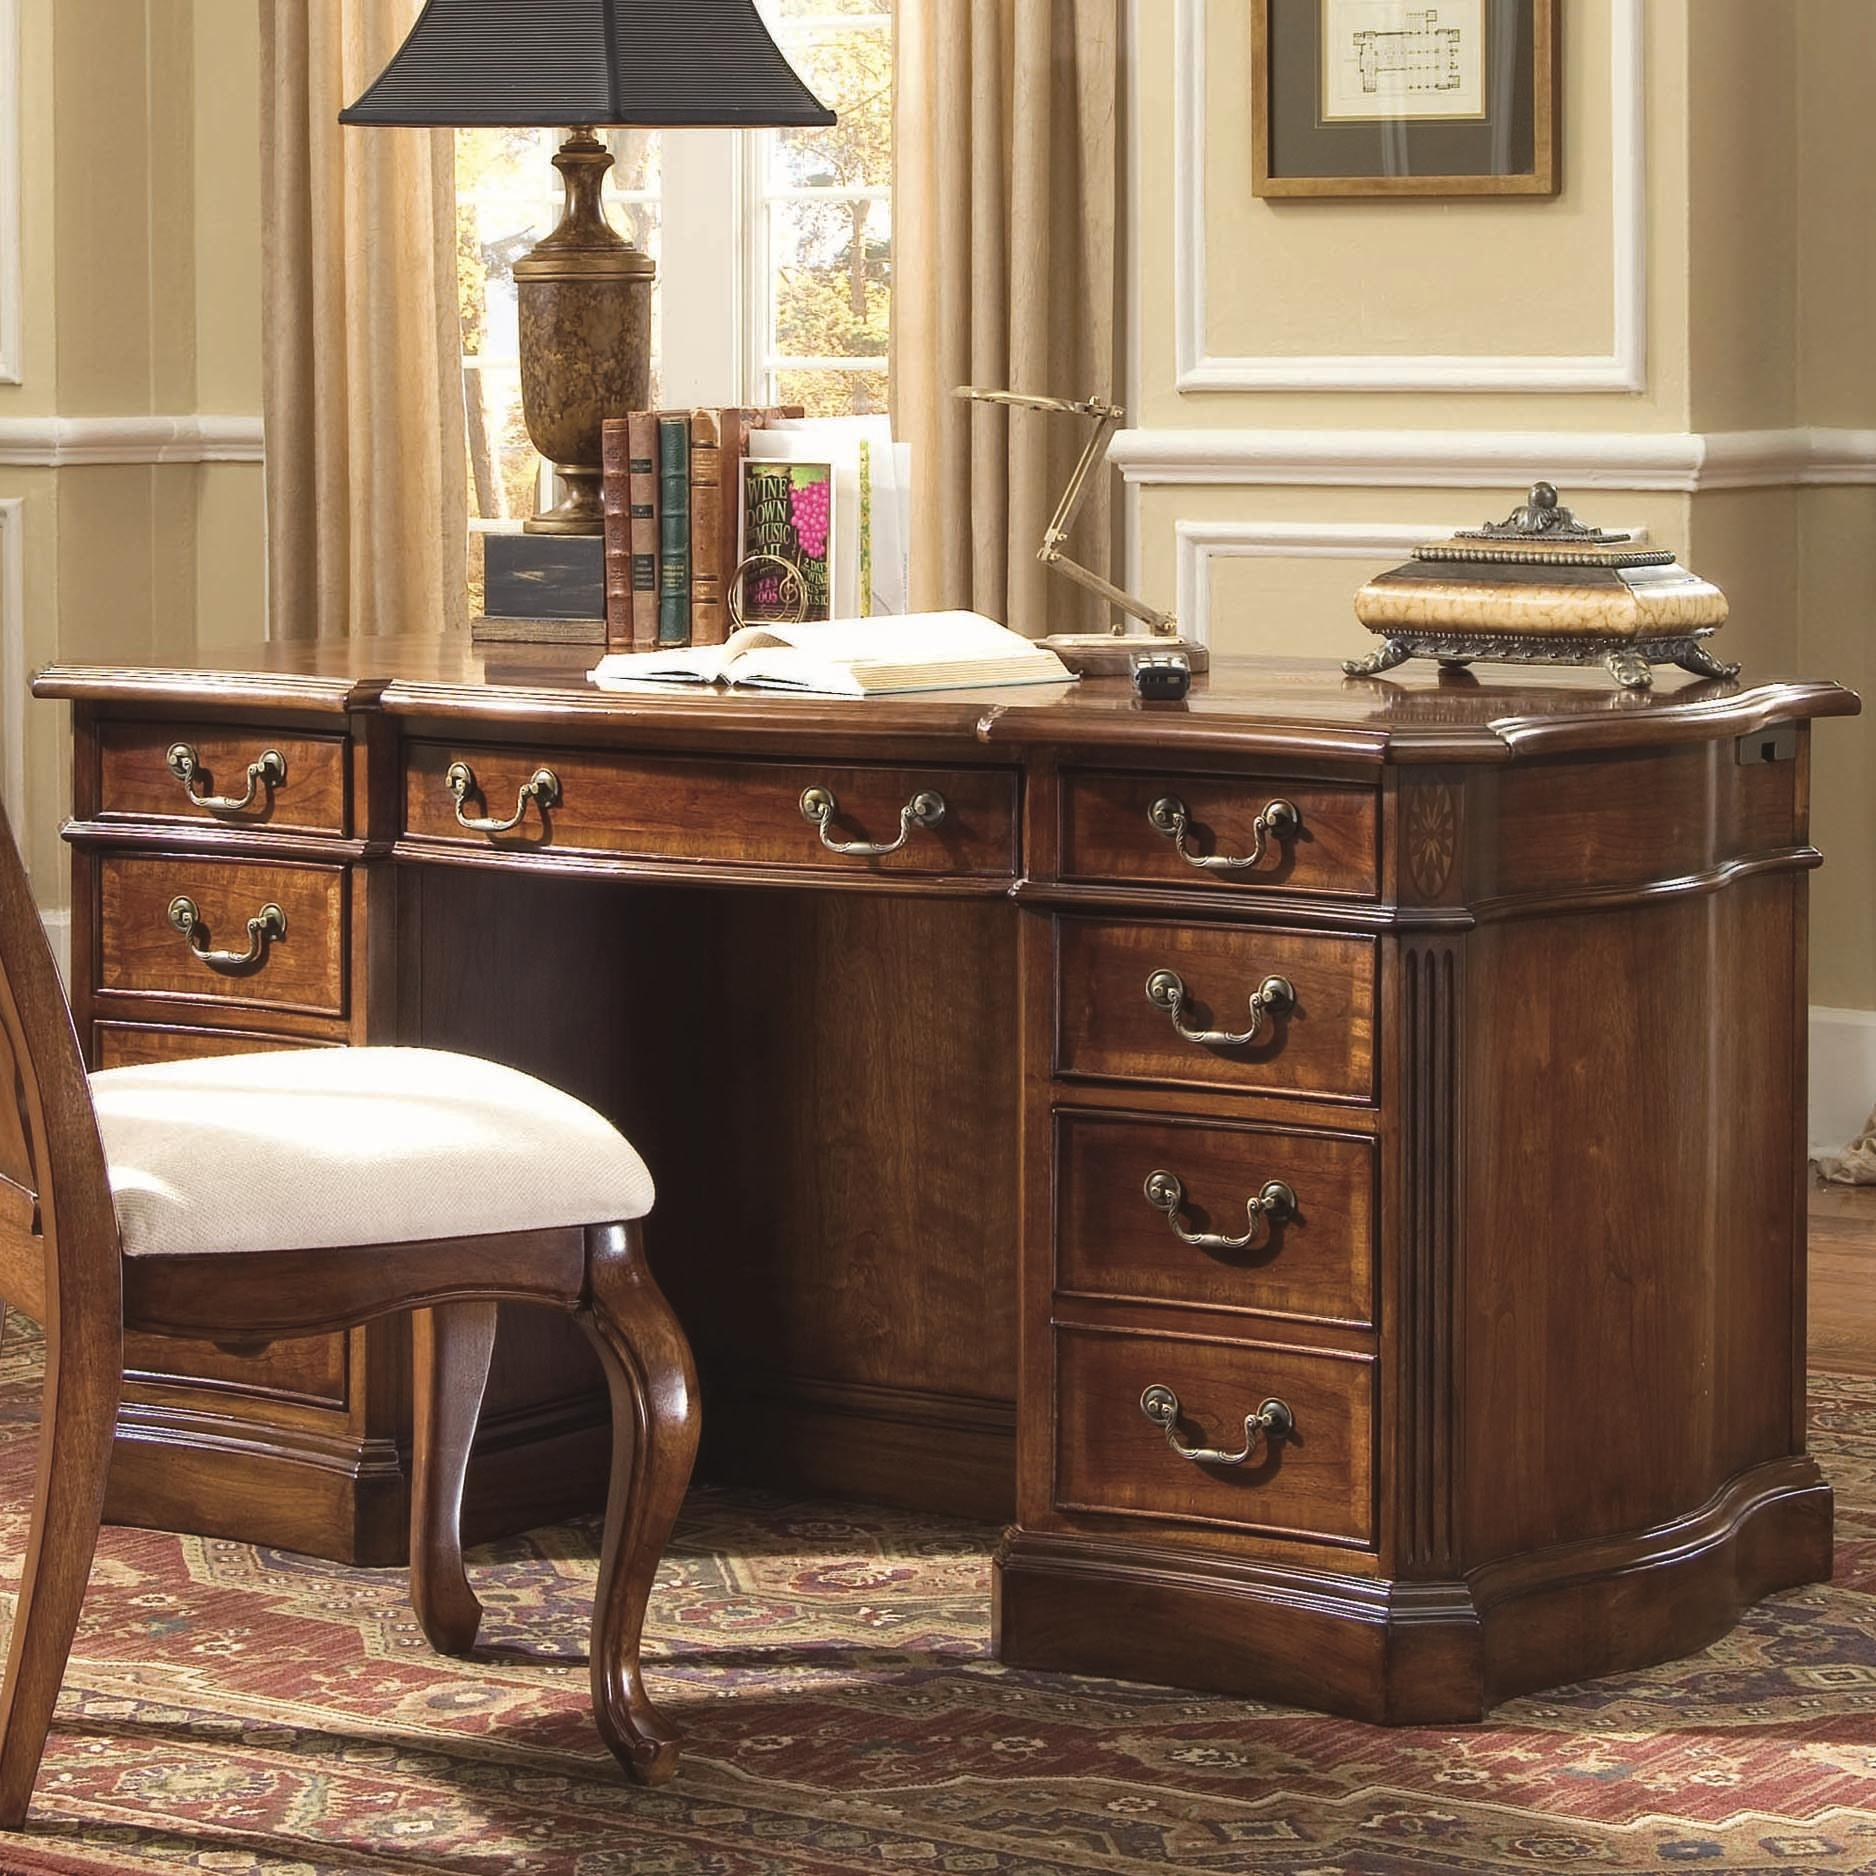 Hamilton Home Belle Grove Belle Grove 60-Inch Desk - Item Number: 060-10-460